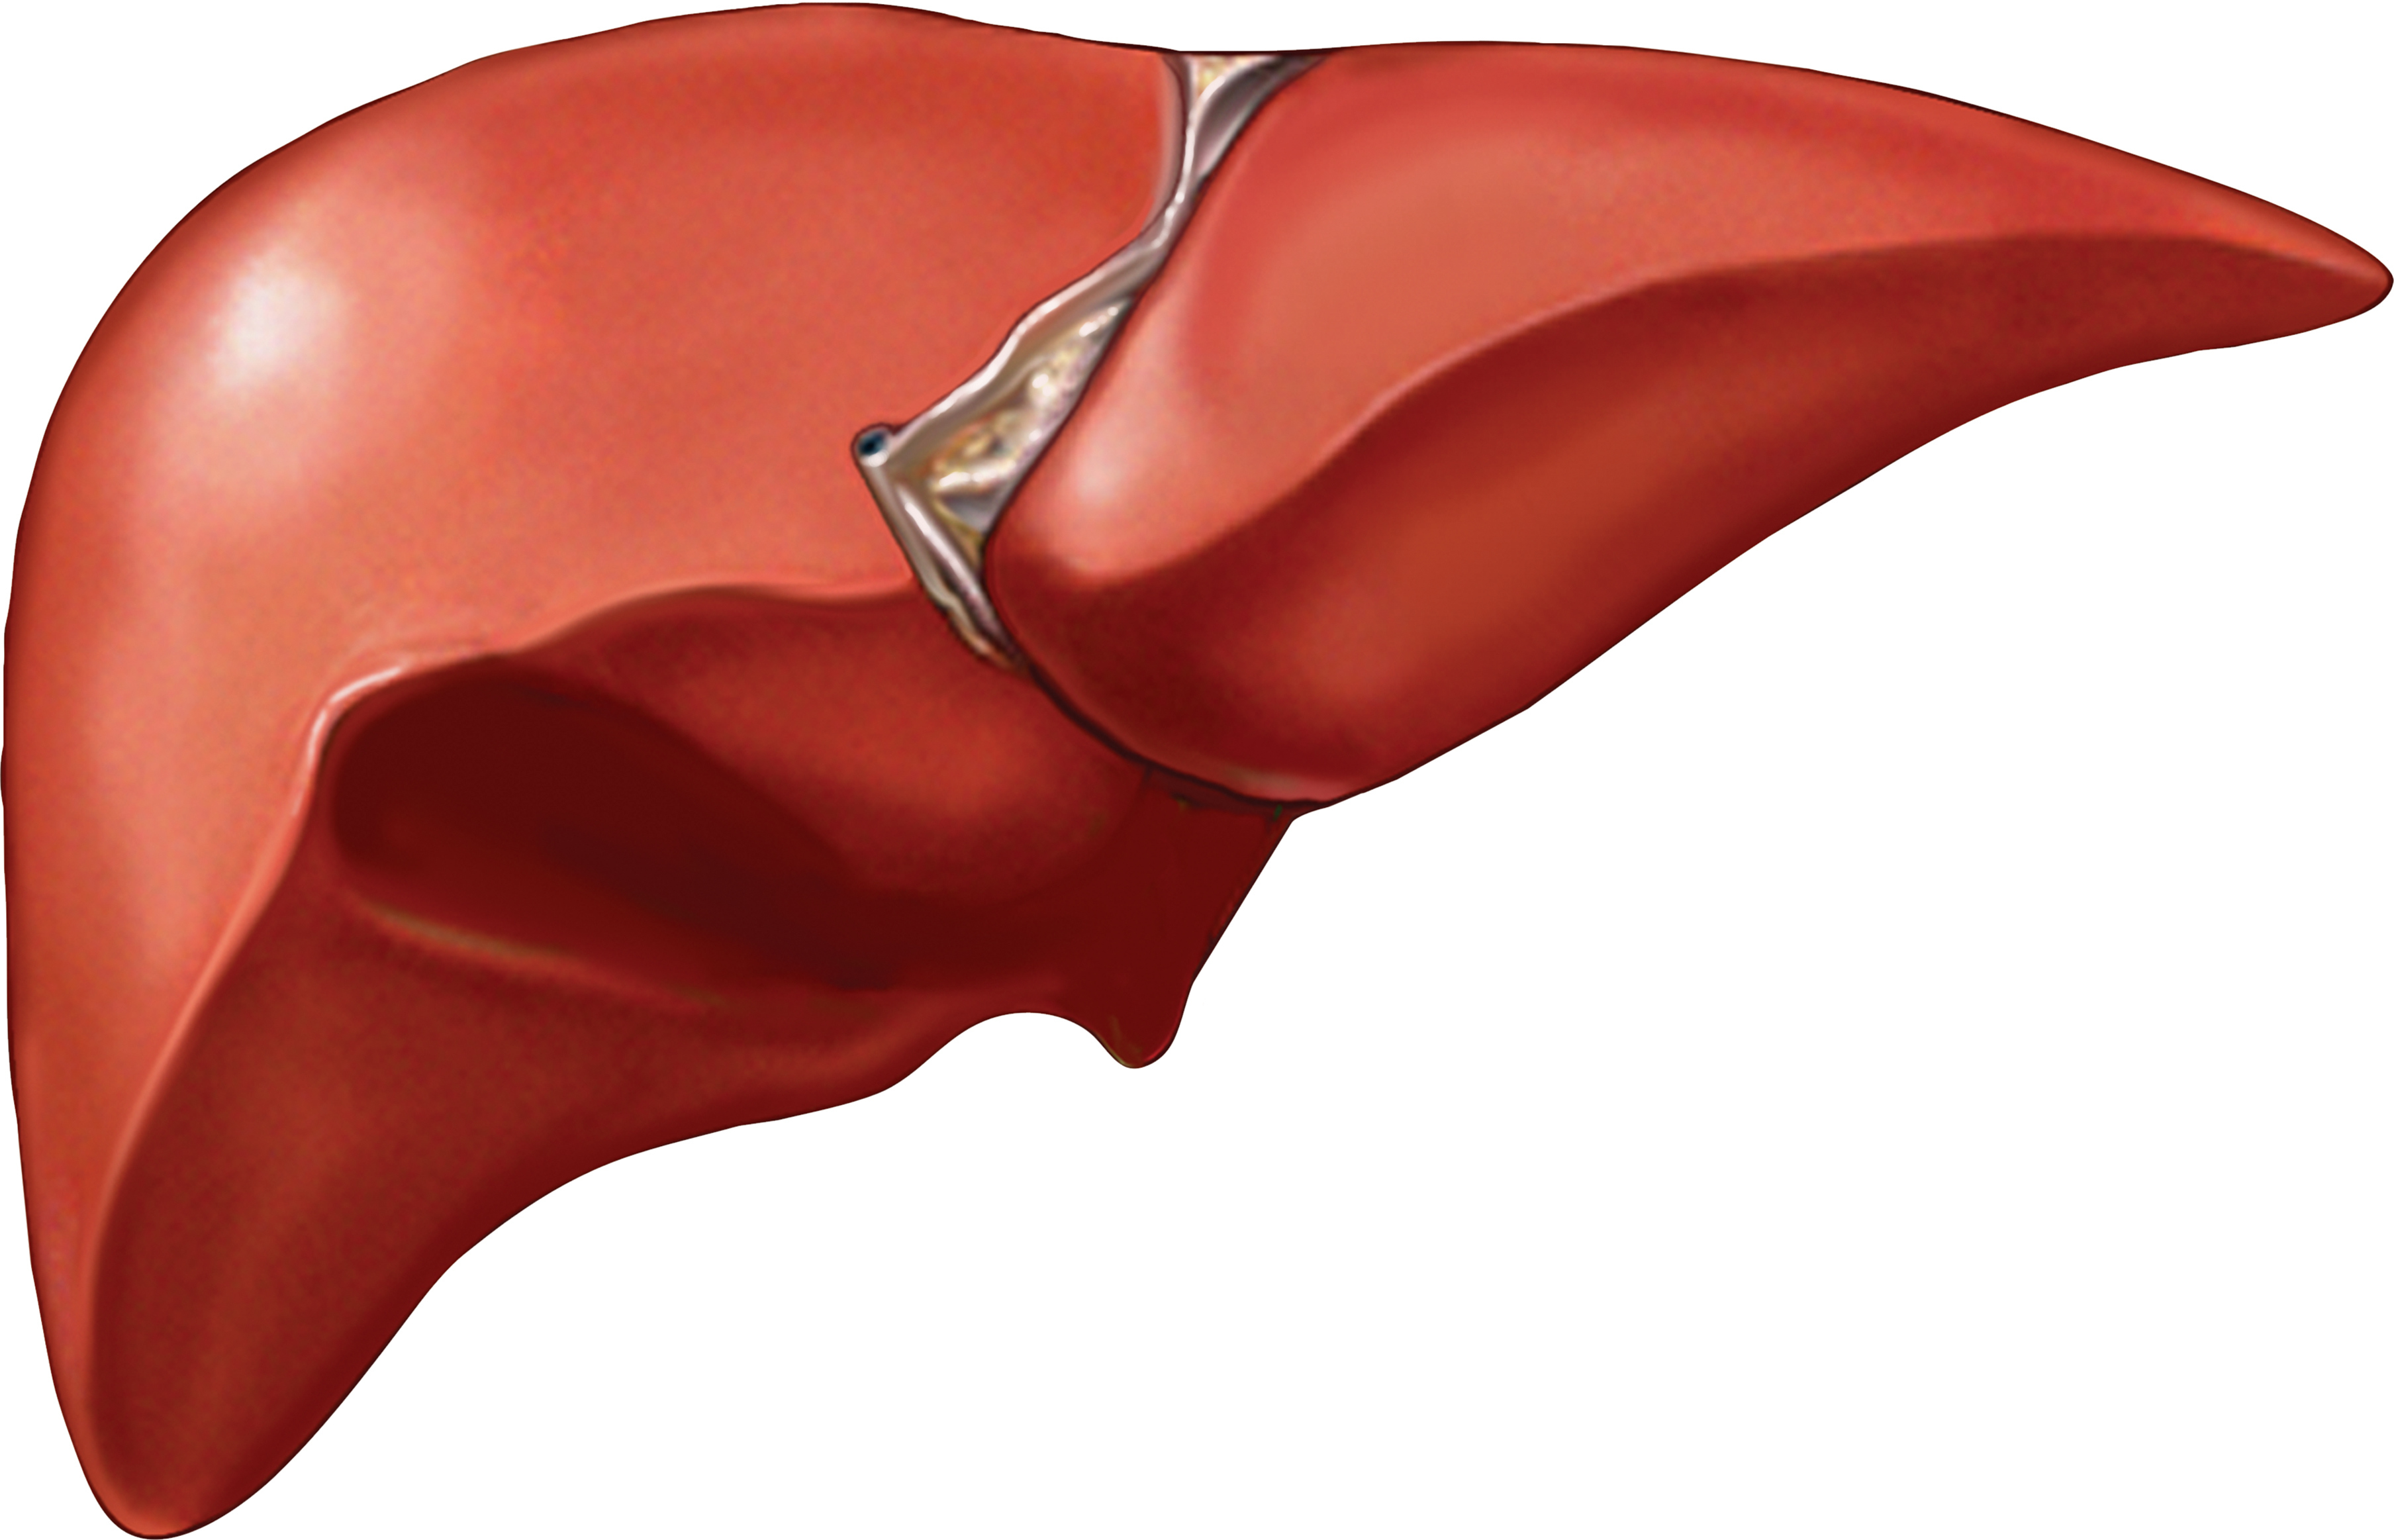 3616x2326 5 Facts You Probably Didn'T Know About Your Liver